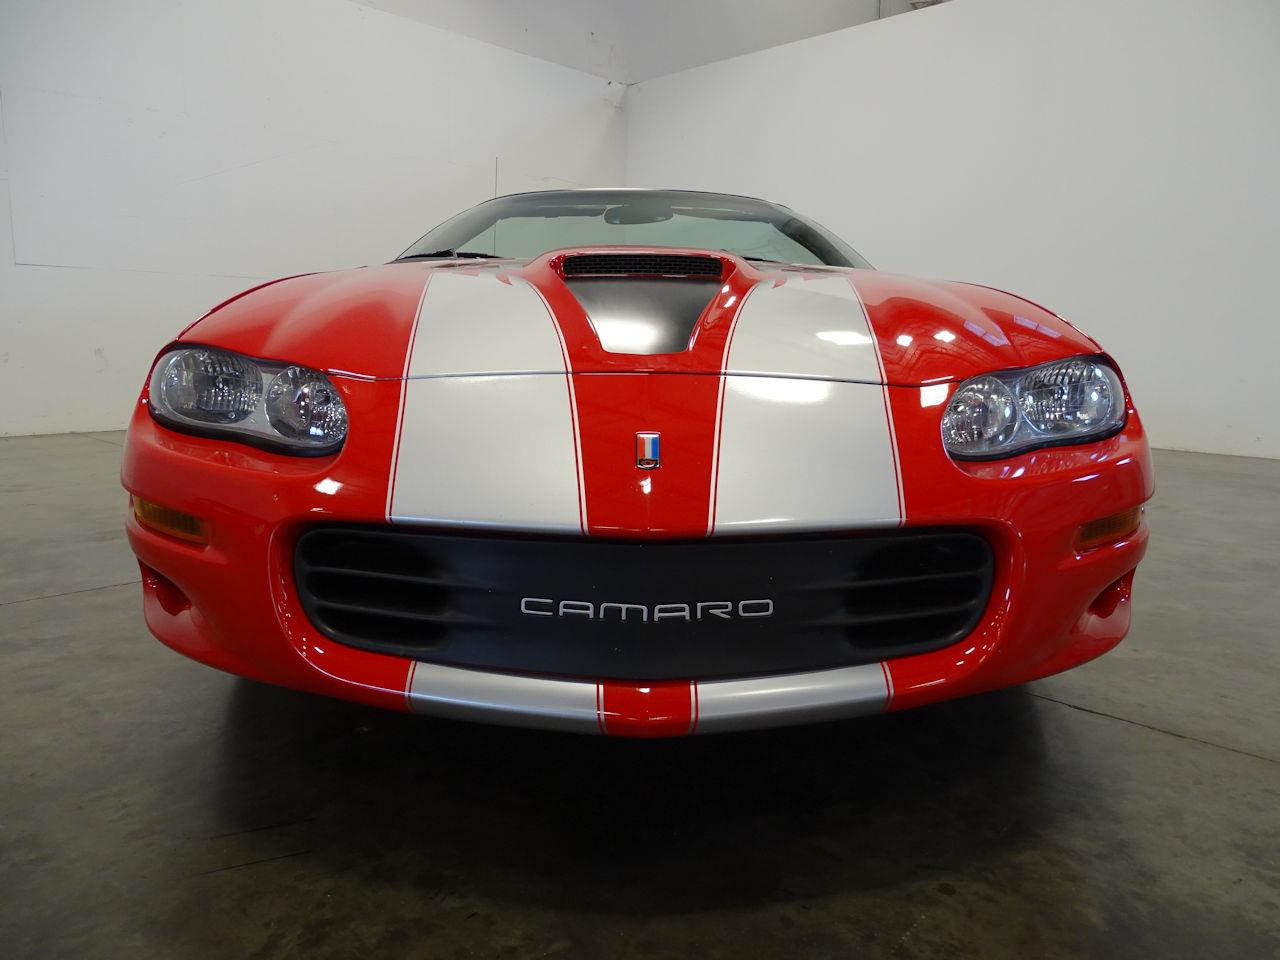 2002 Chevrolet Camaro (CC-1386128) for sale in O'Fallon, Illinois